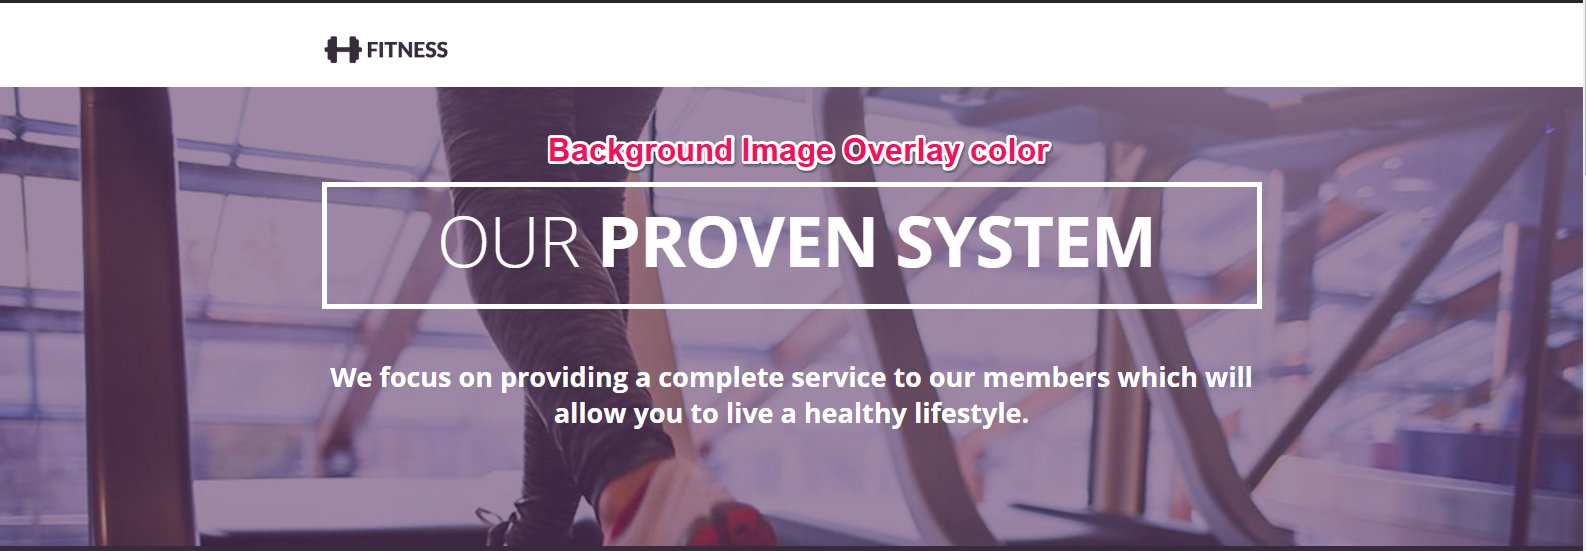 How To Customize The Background Image Overlay Color And Feature Box Opacity Color Of Shape Business Template Optimizepress 2 0 Knowledgebase